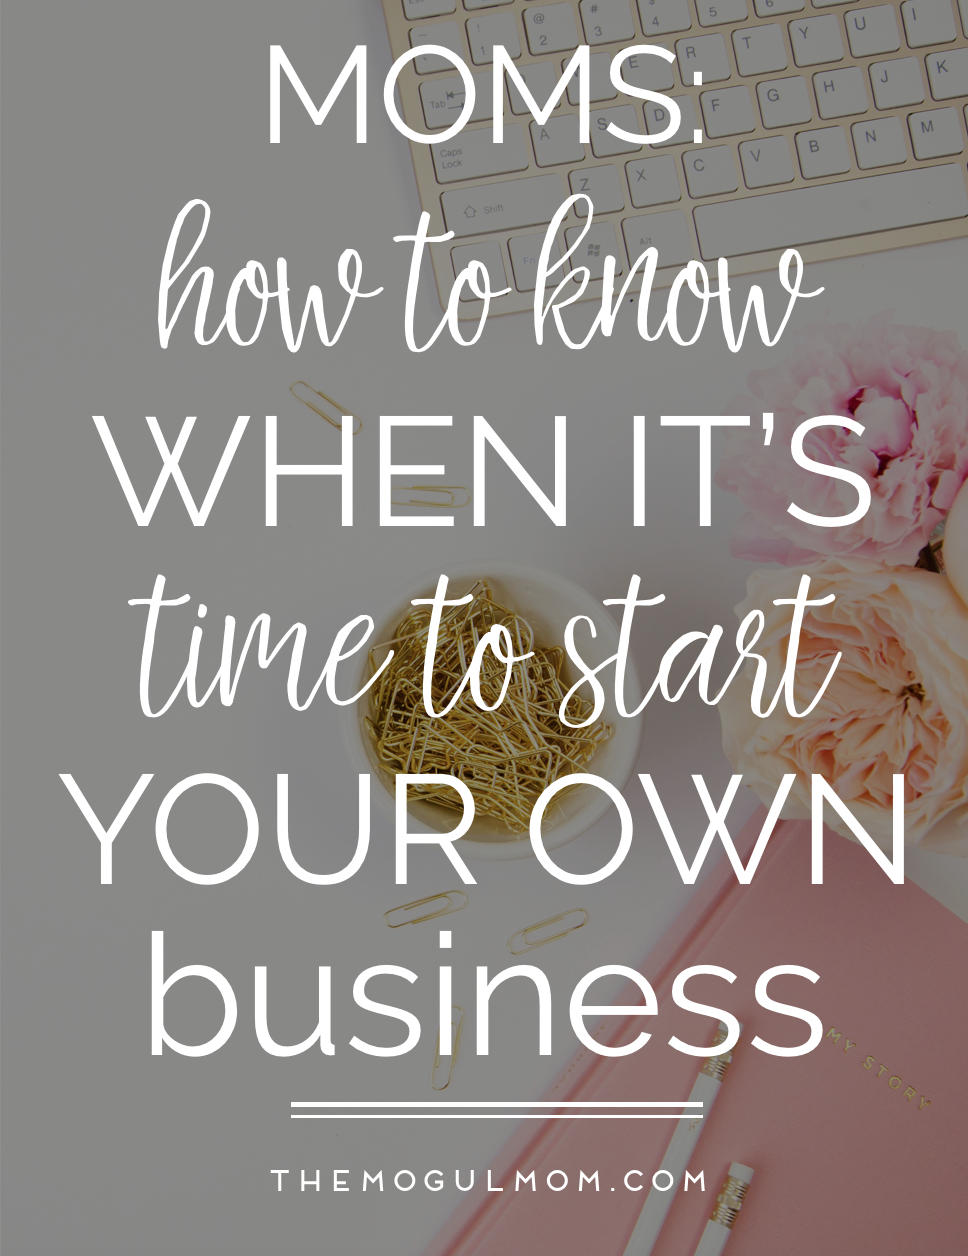 Attention Moms: How to Know You're Ready to Start Your Own Business